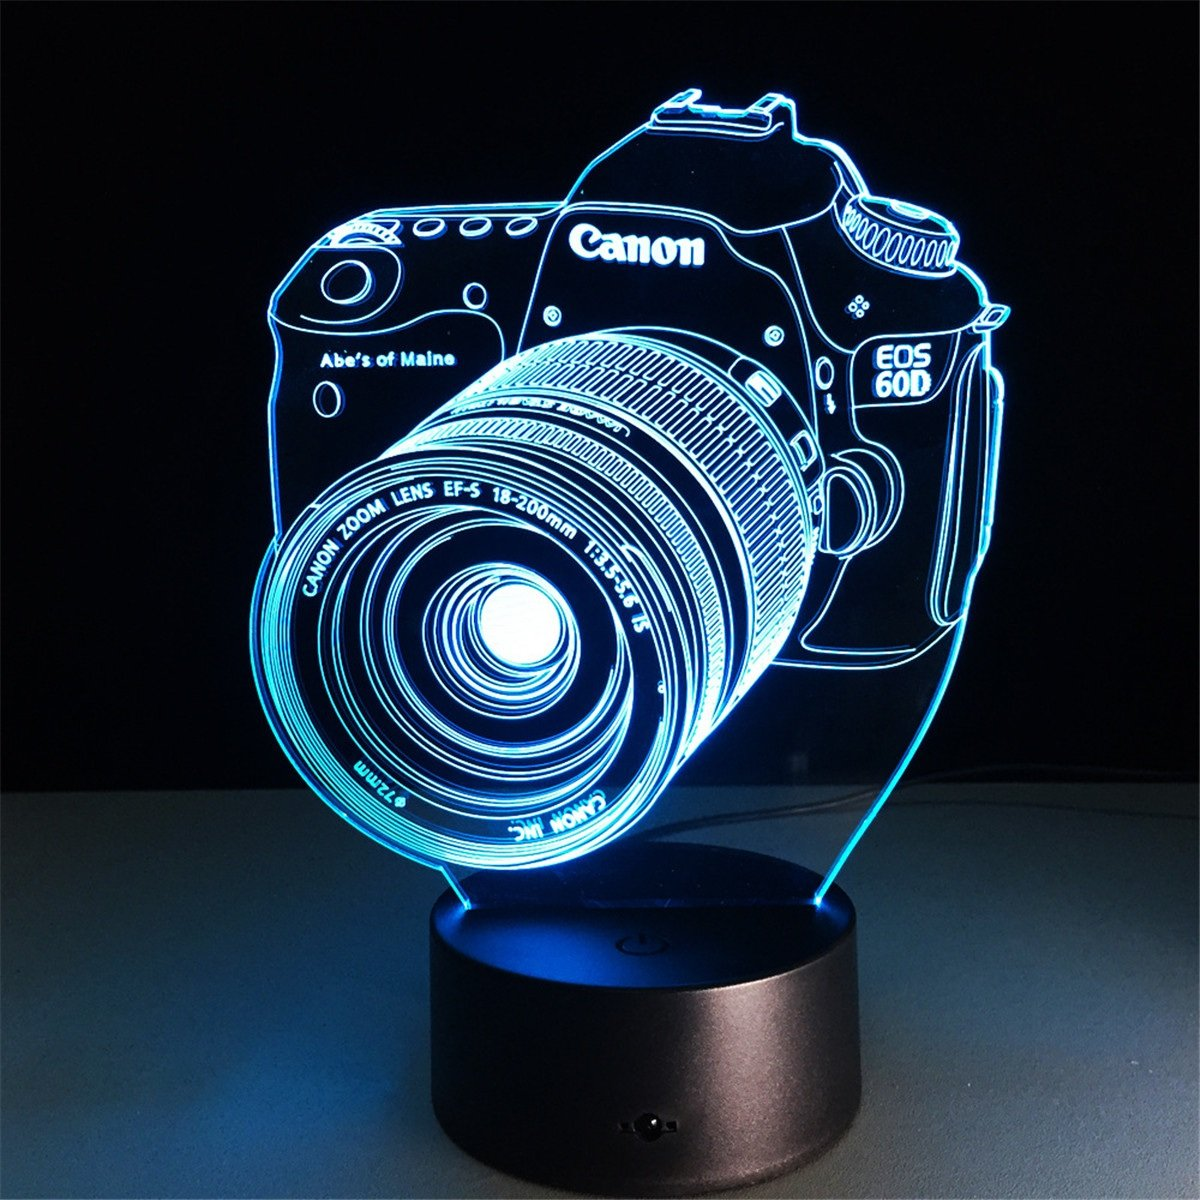 Camera 3D LED Night Lamp visualization Illusion 7 Color Change Touch Button Switch USB Powered Amazing Art Optical Unique Lighting Effects Desk Table Night Light for Bedroom Home Decor